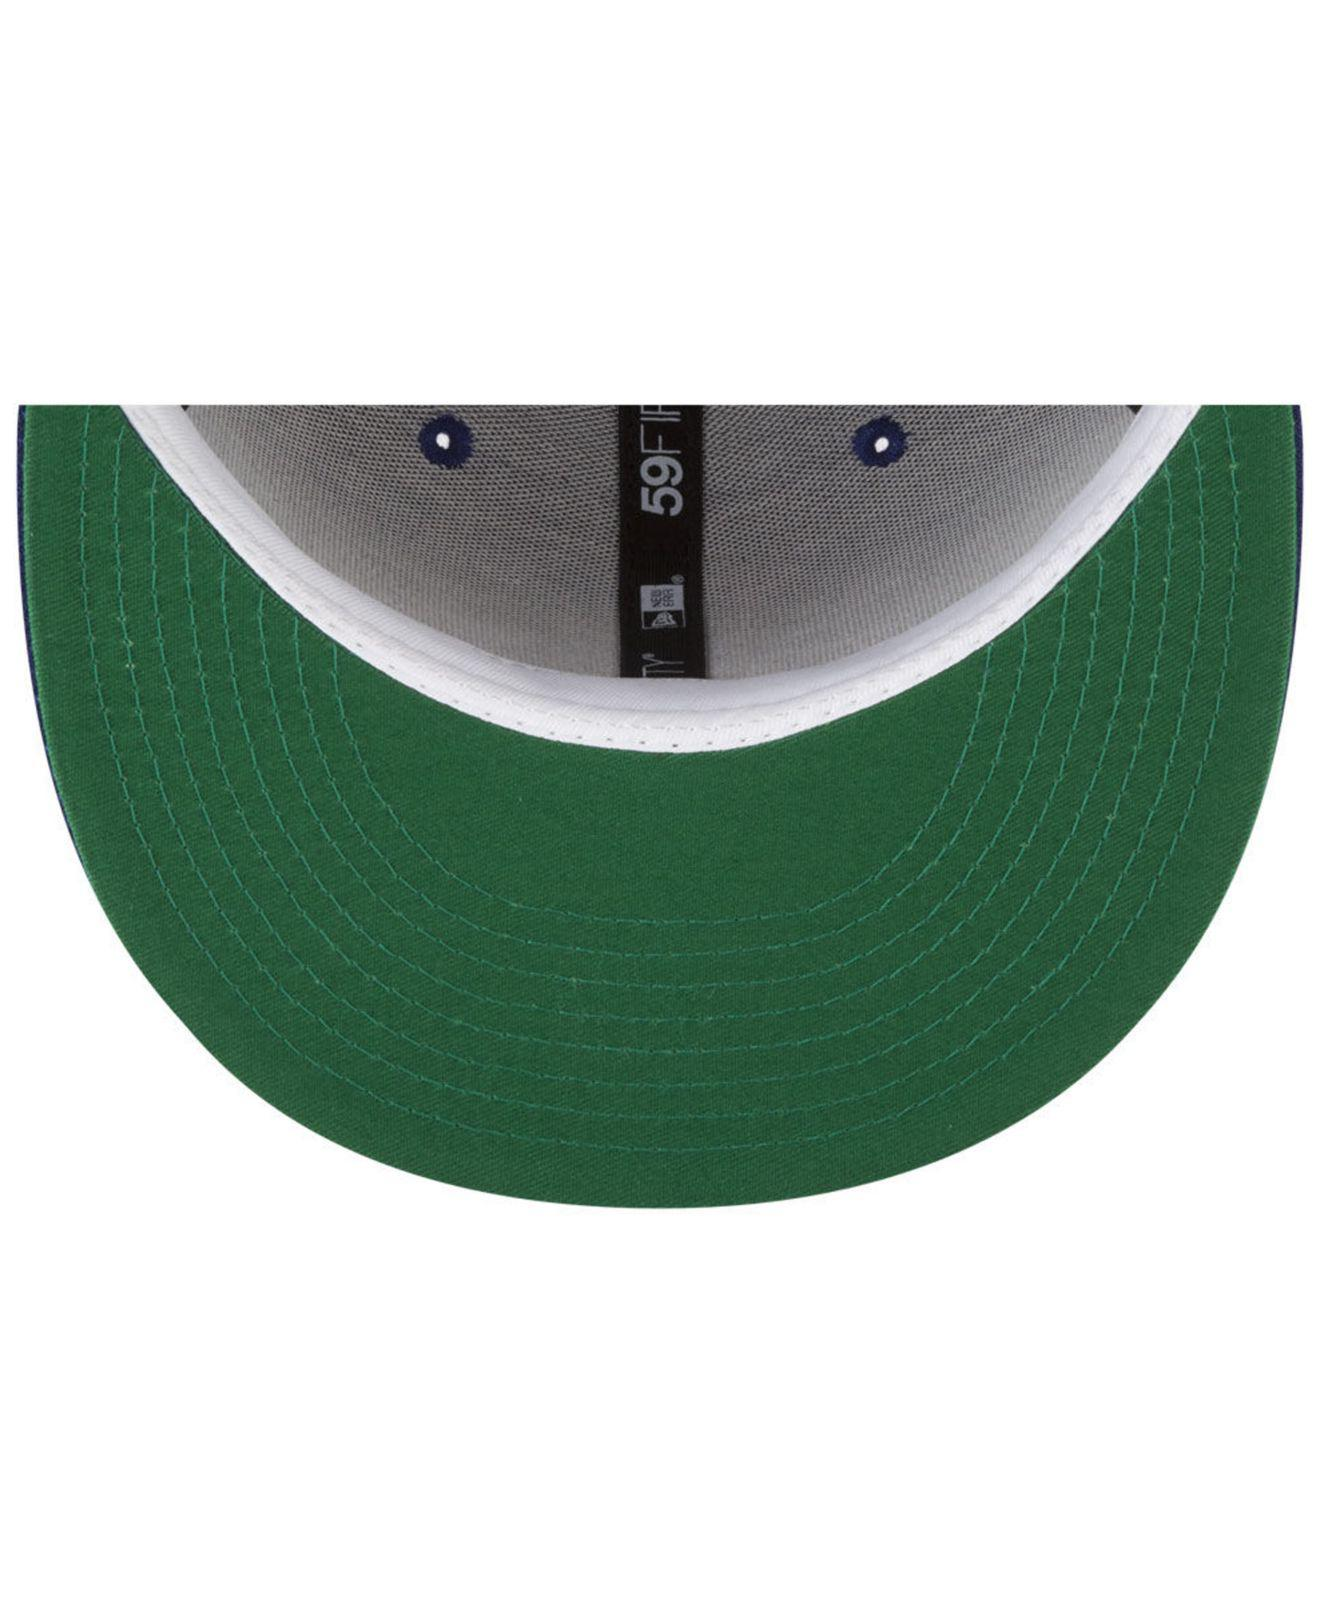 ... Los Angeles Dodgers Batting Practice Wool Flip 59fifty Fitted Cap for  Men -. View fullscreen ab1e31e40f1c